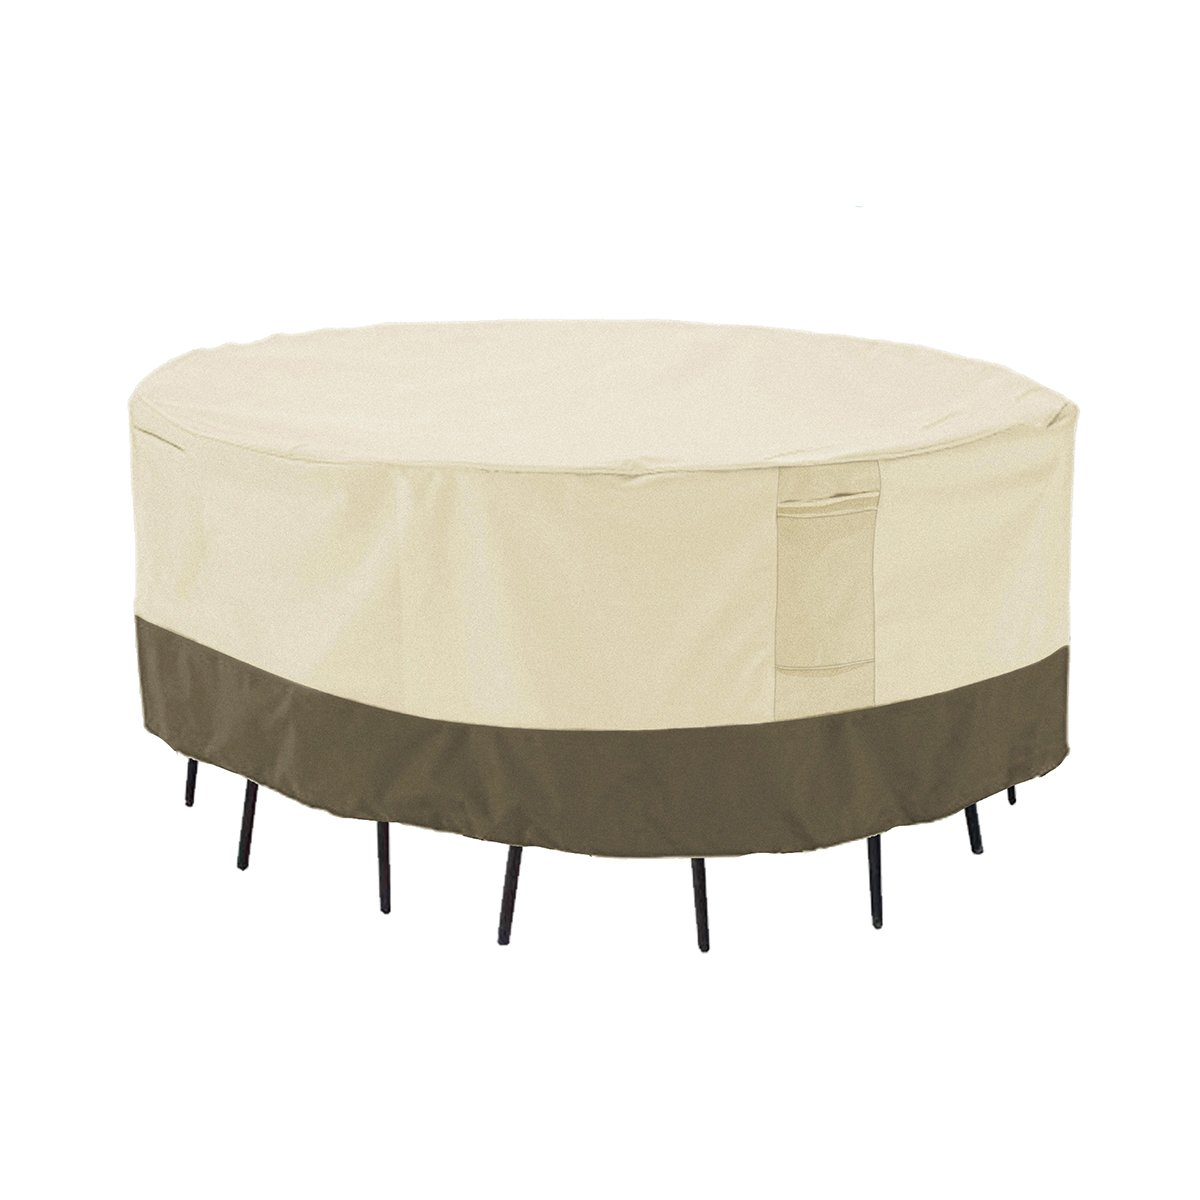 PHI VILLA Patio Round Table & Chair Set Cover, Durable Water Resistant Outdoor Furniture Cover with Pop-up Supporter, Large